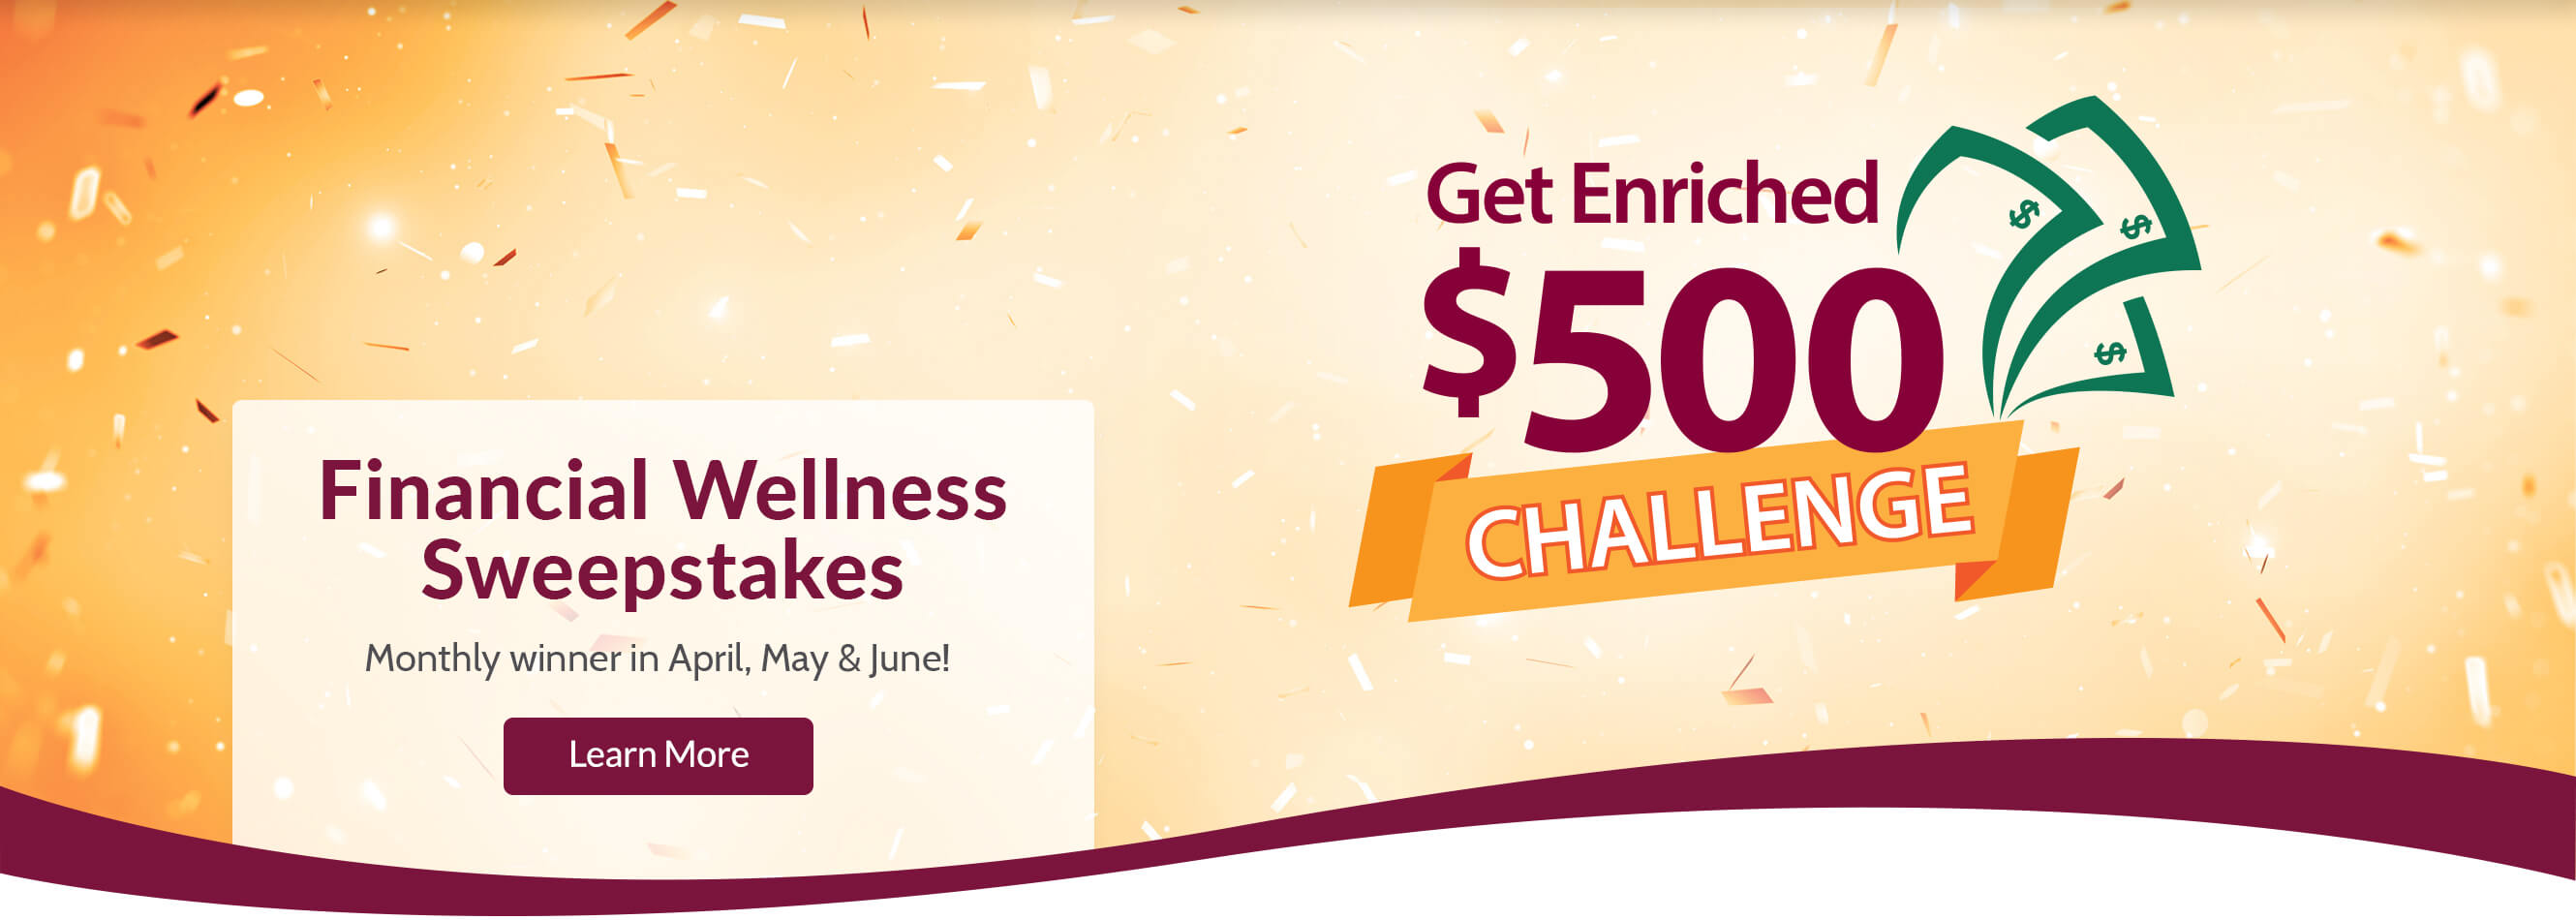 Get Enriched Sweepstakes